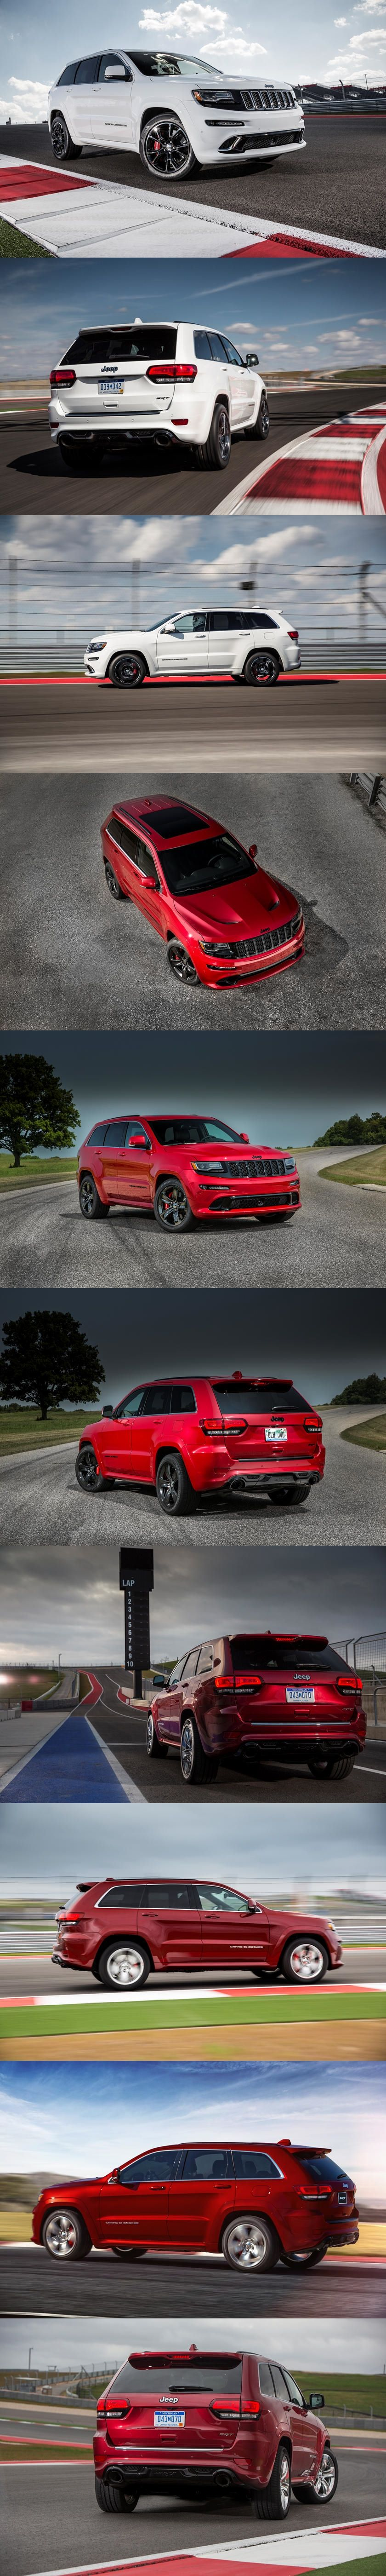 The Jeep Grand Cherokee Srt 8 Is Your Budget Family Dragster With